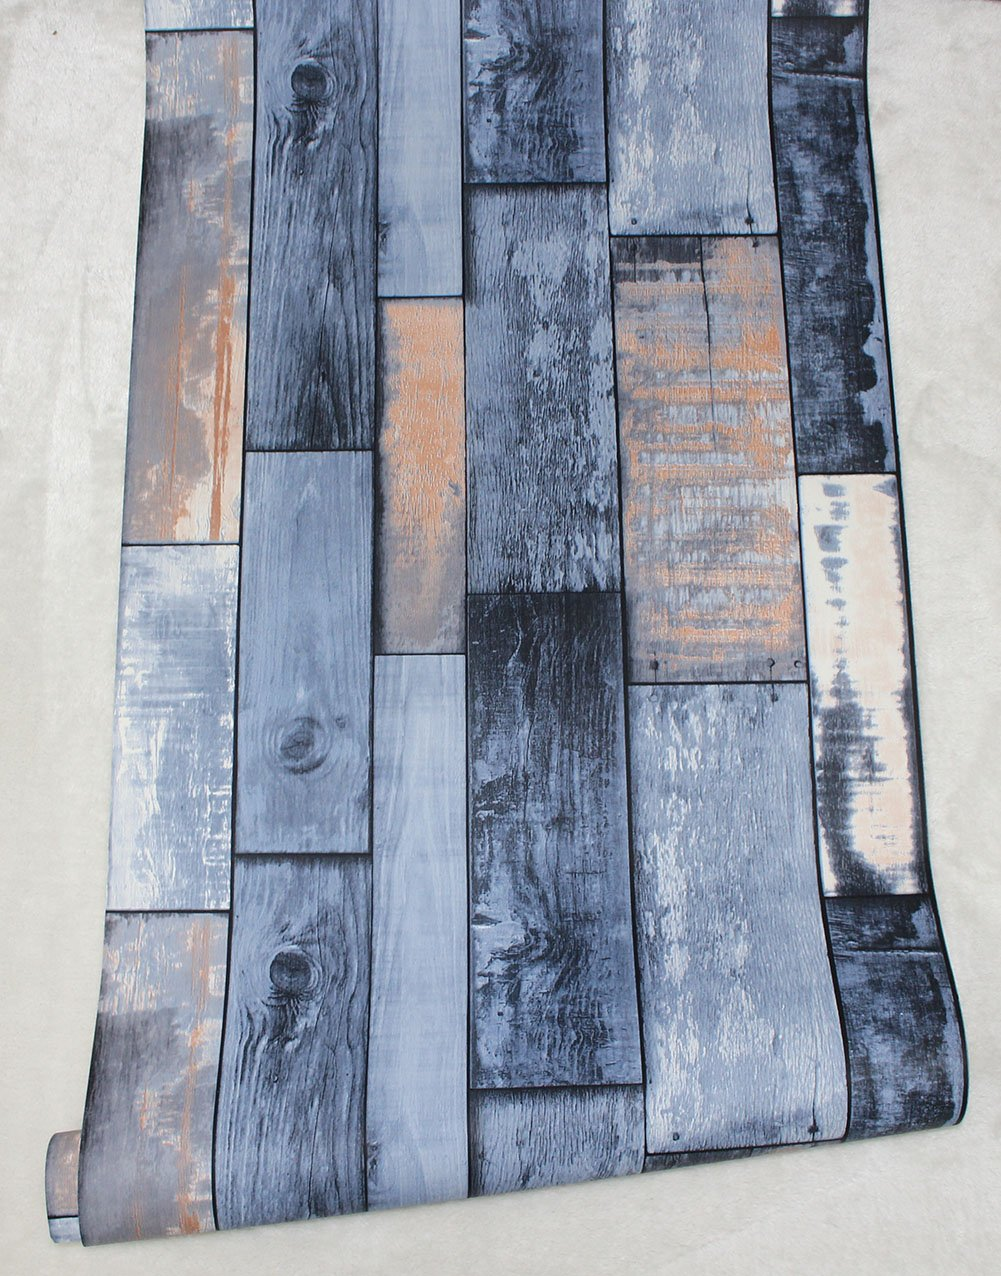 HaokHome S5003 8032 282021 373803 Faux Wood Plank Wallpaper Sample,8-Inch X 10-Inch